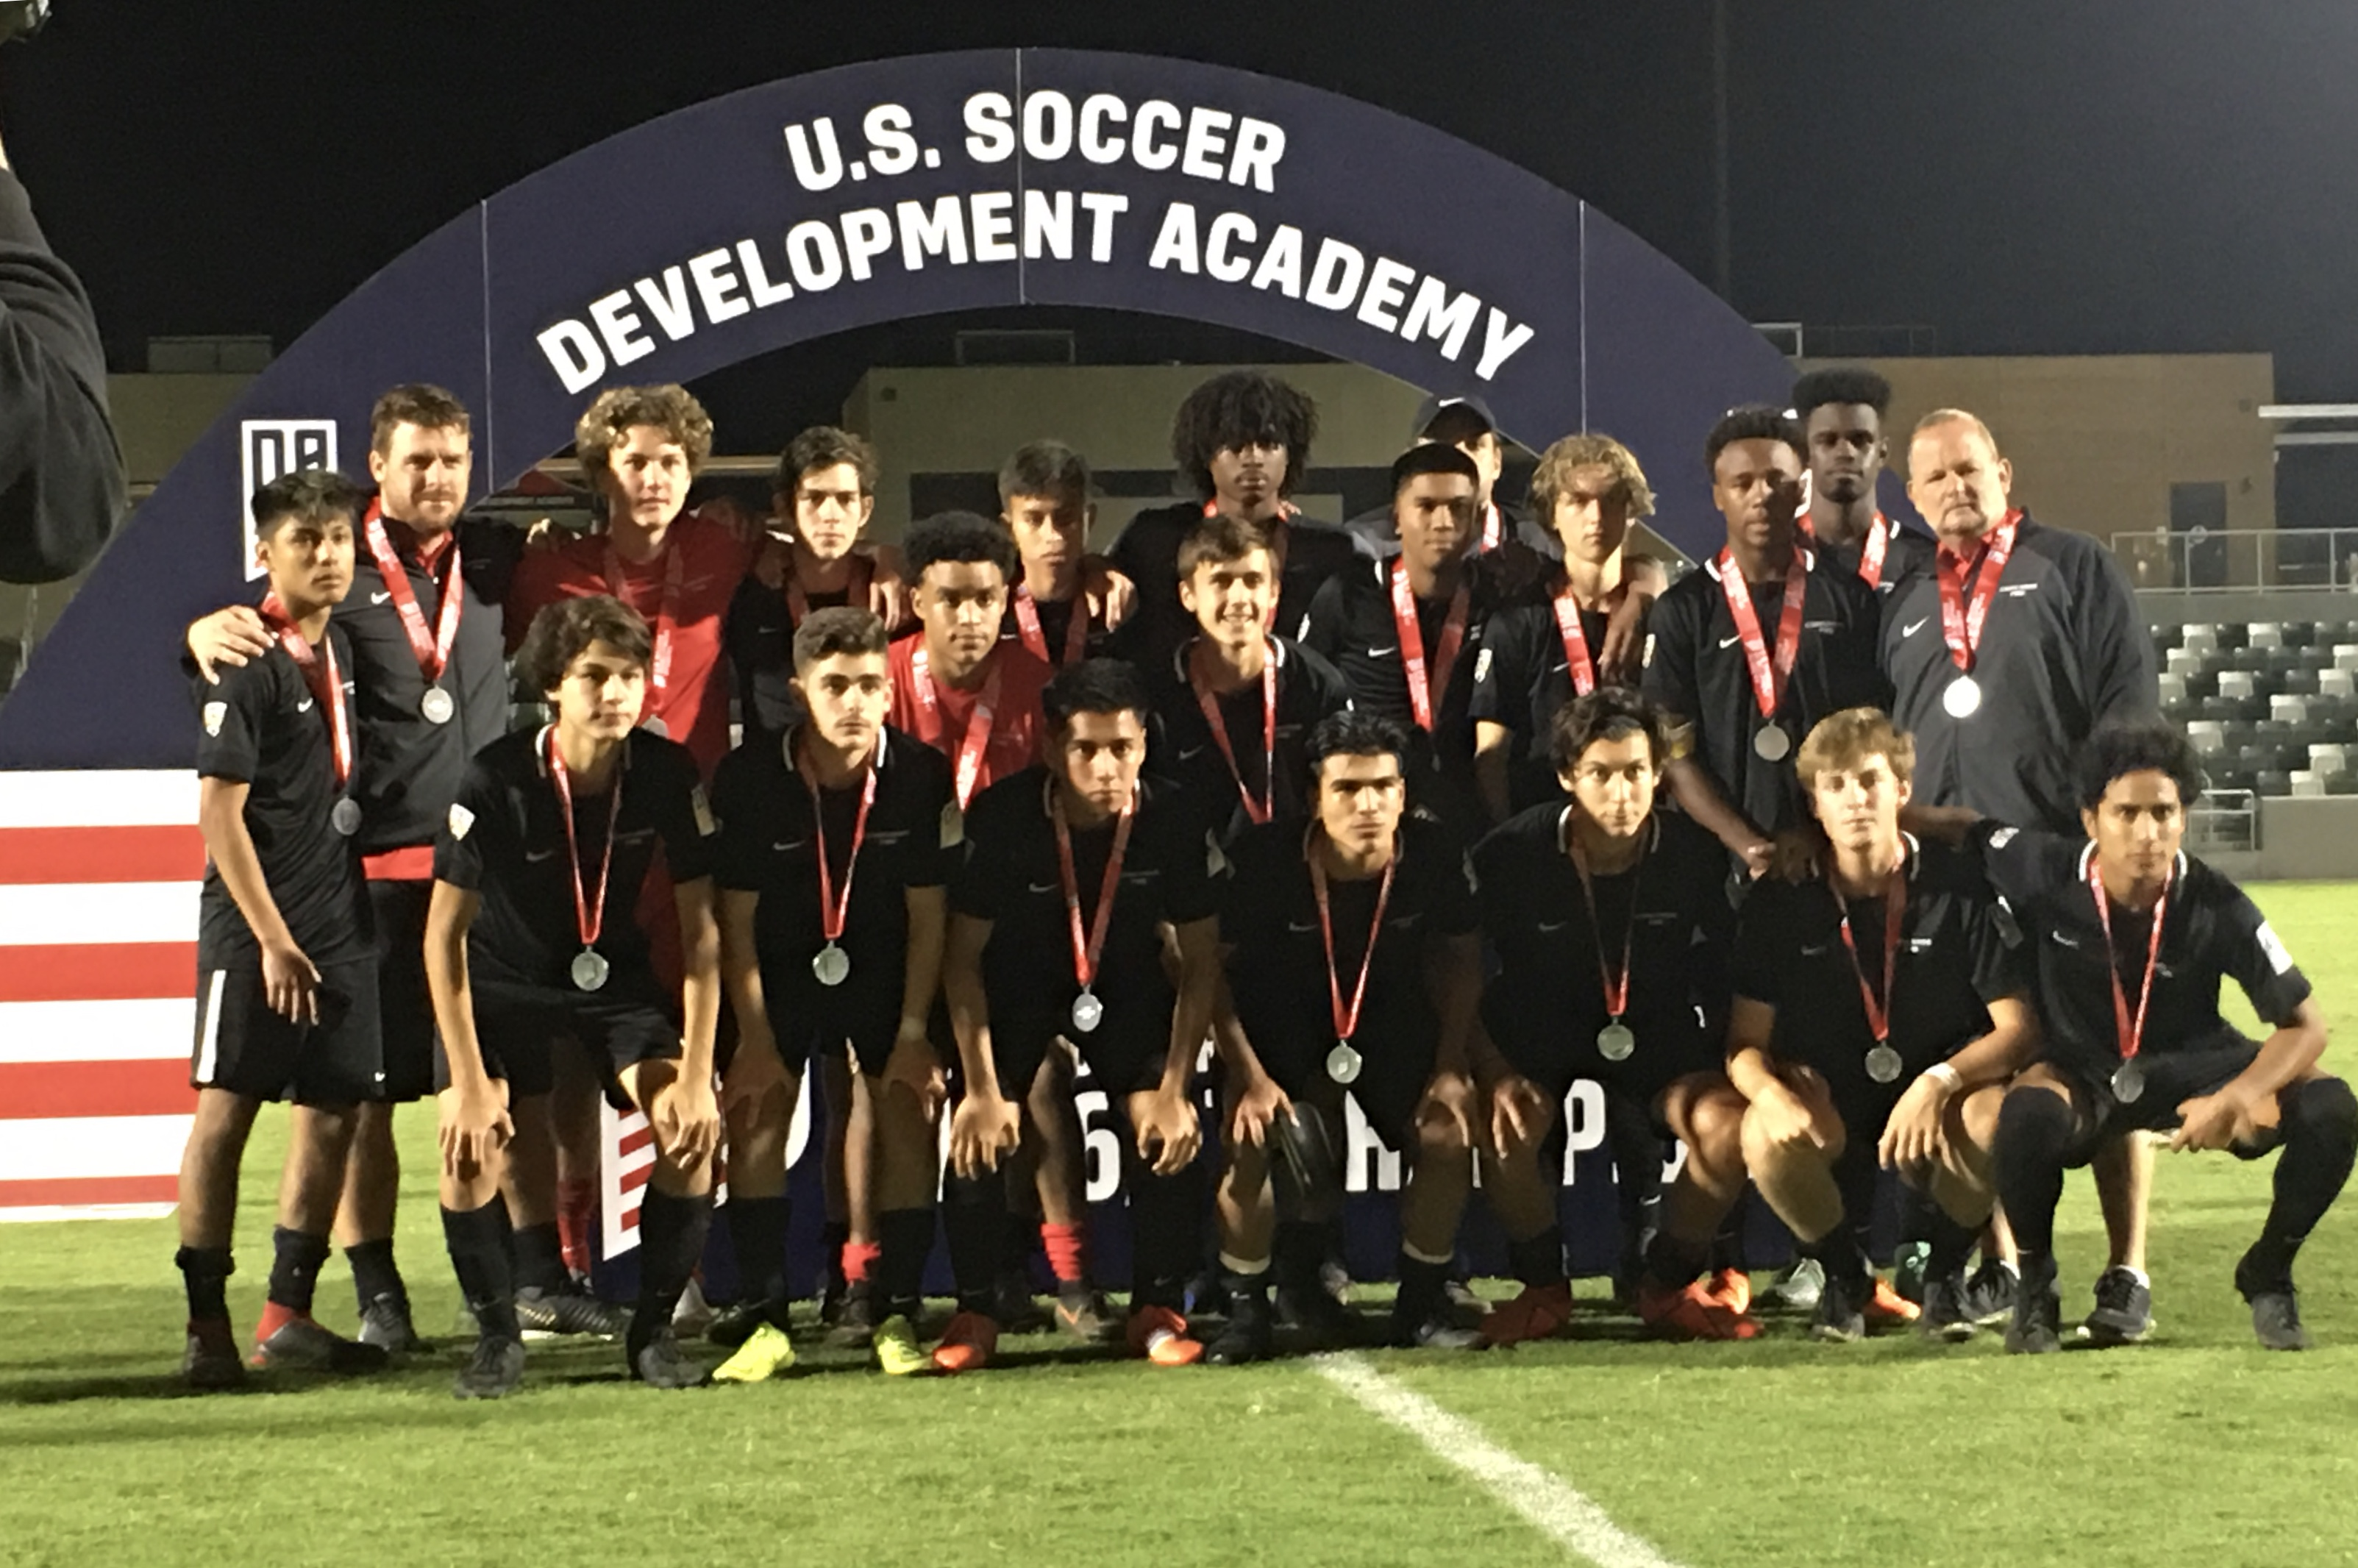 Concorde U17DA Finish the season as Finalist in the Championship game